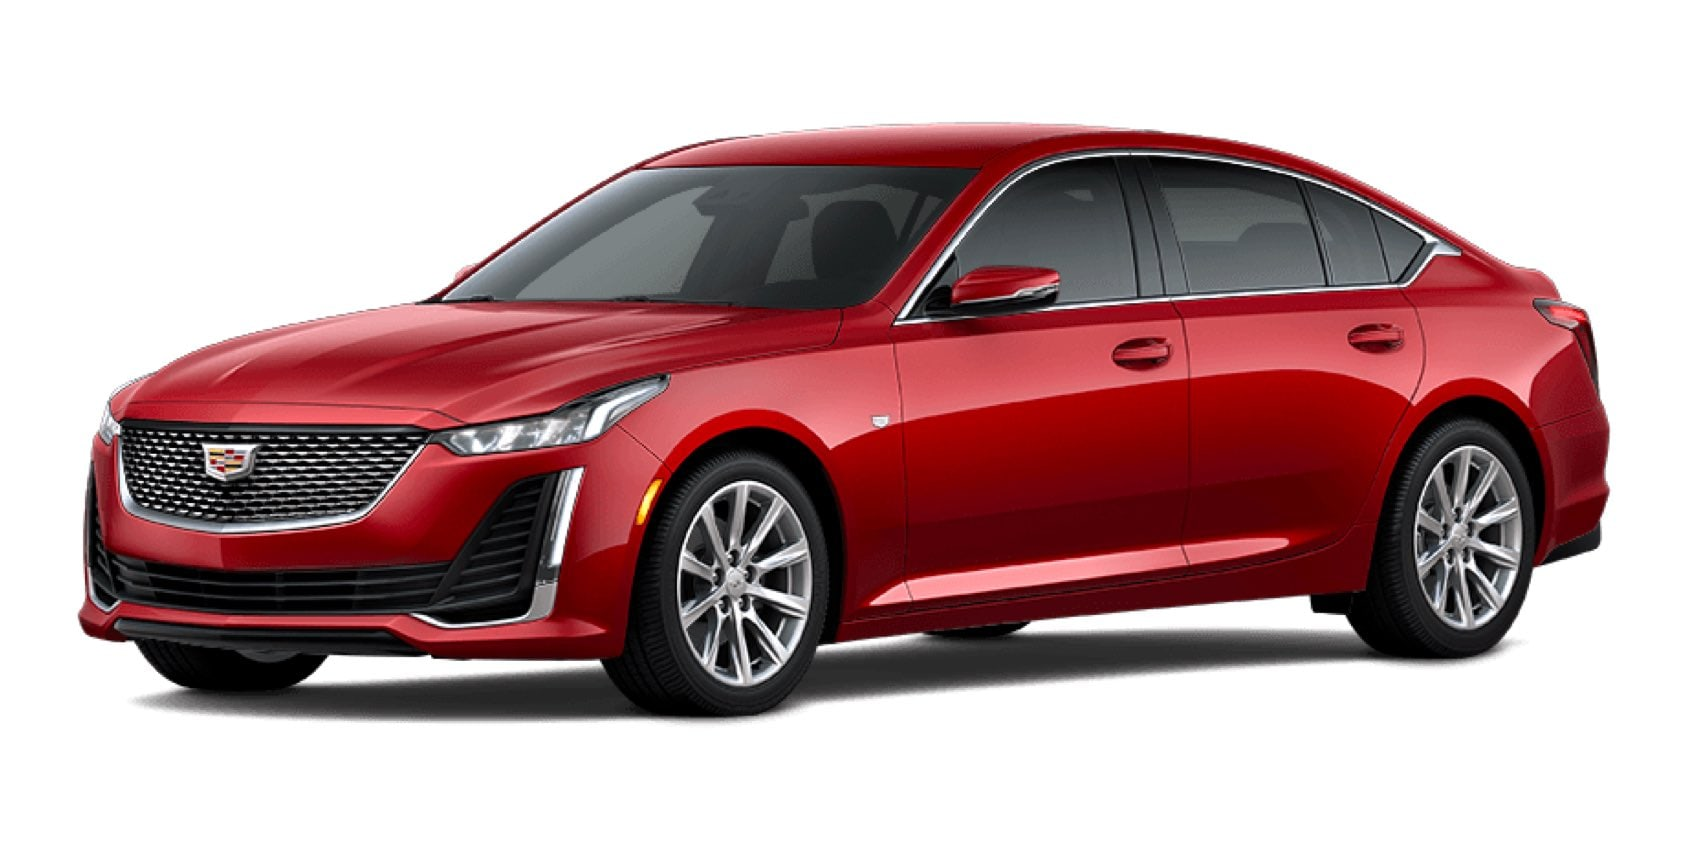 2021 Cadillac CT5 in Infrared Tintcoat